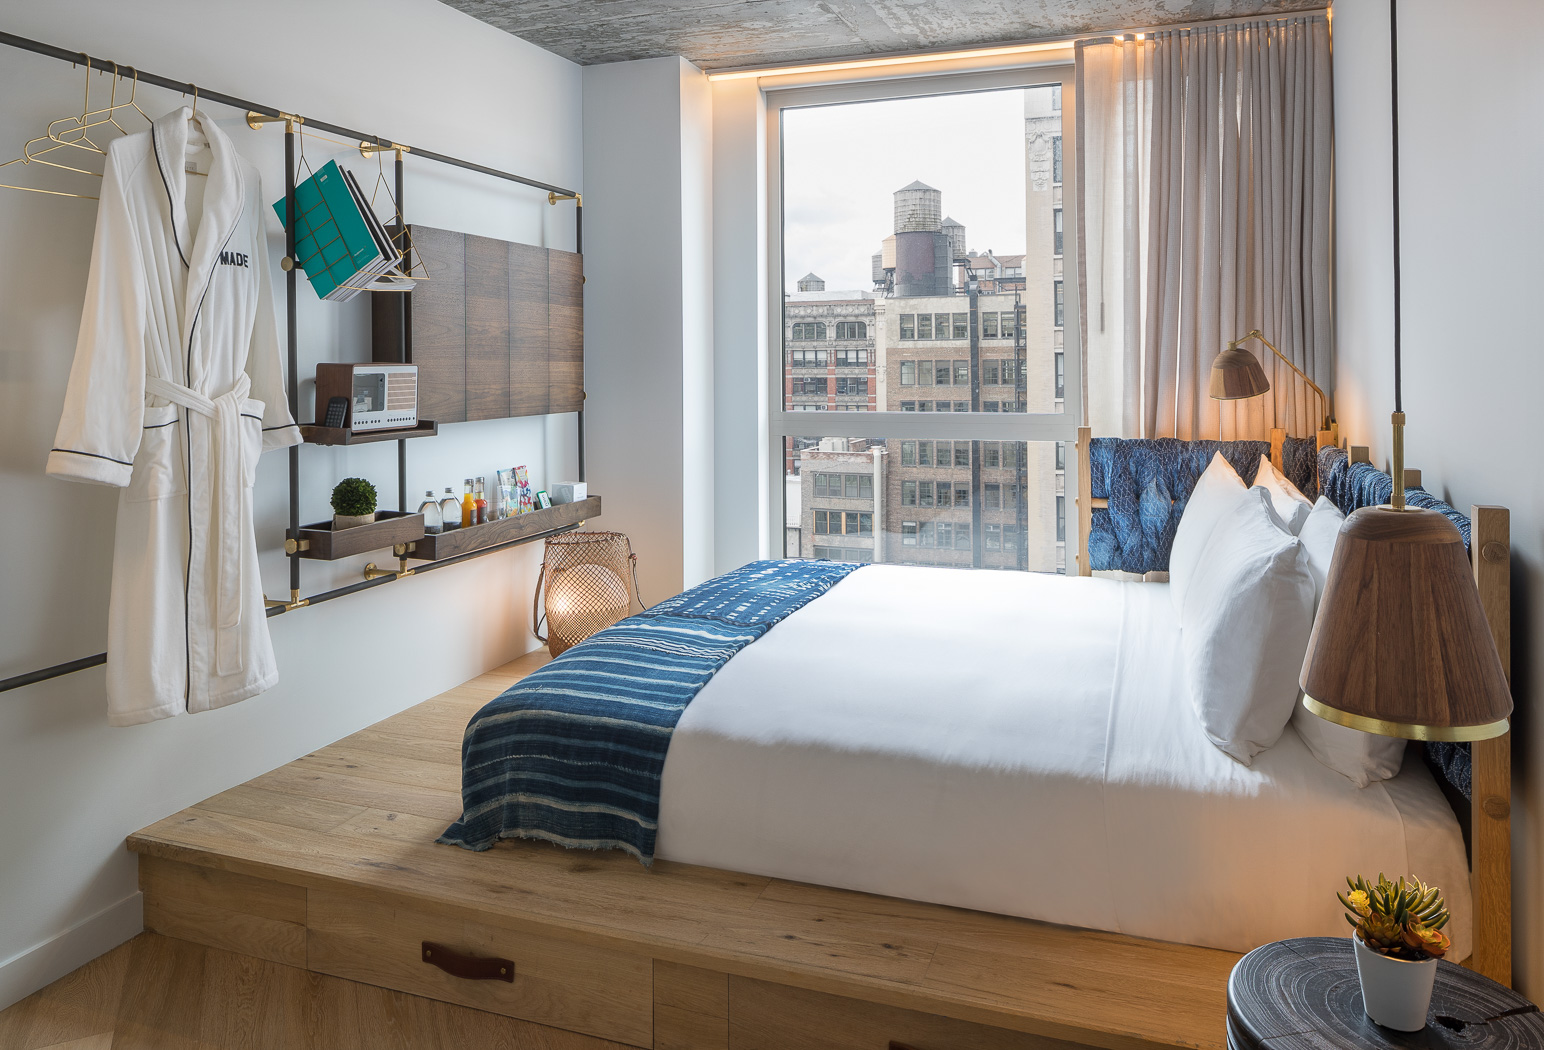 Leesa beds are used in New York City's Made Hotel.